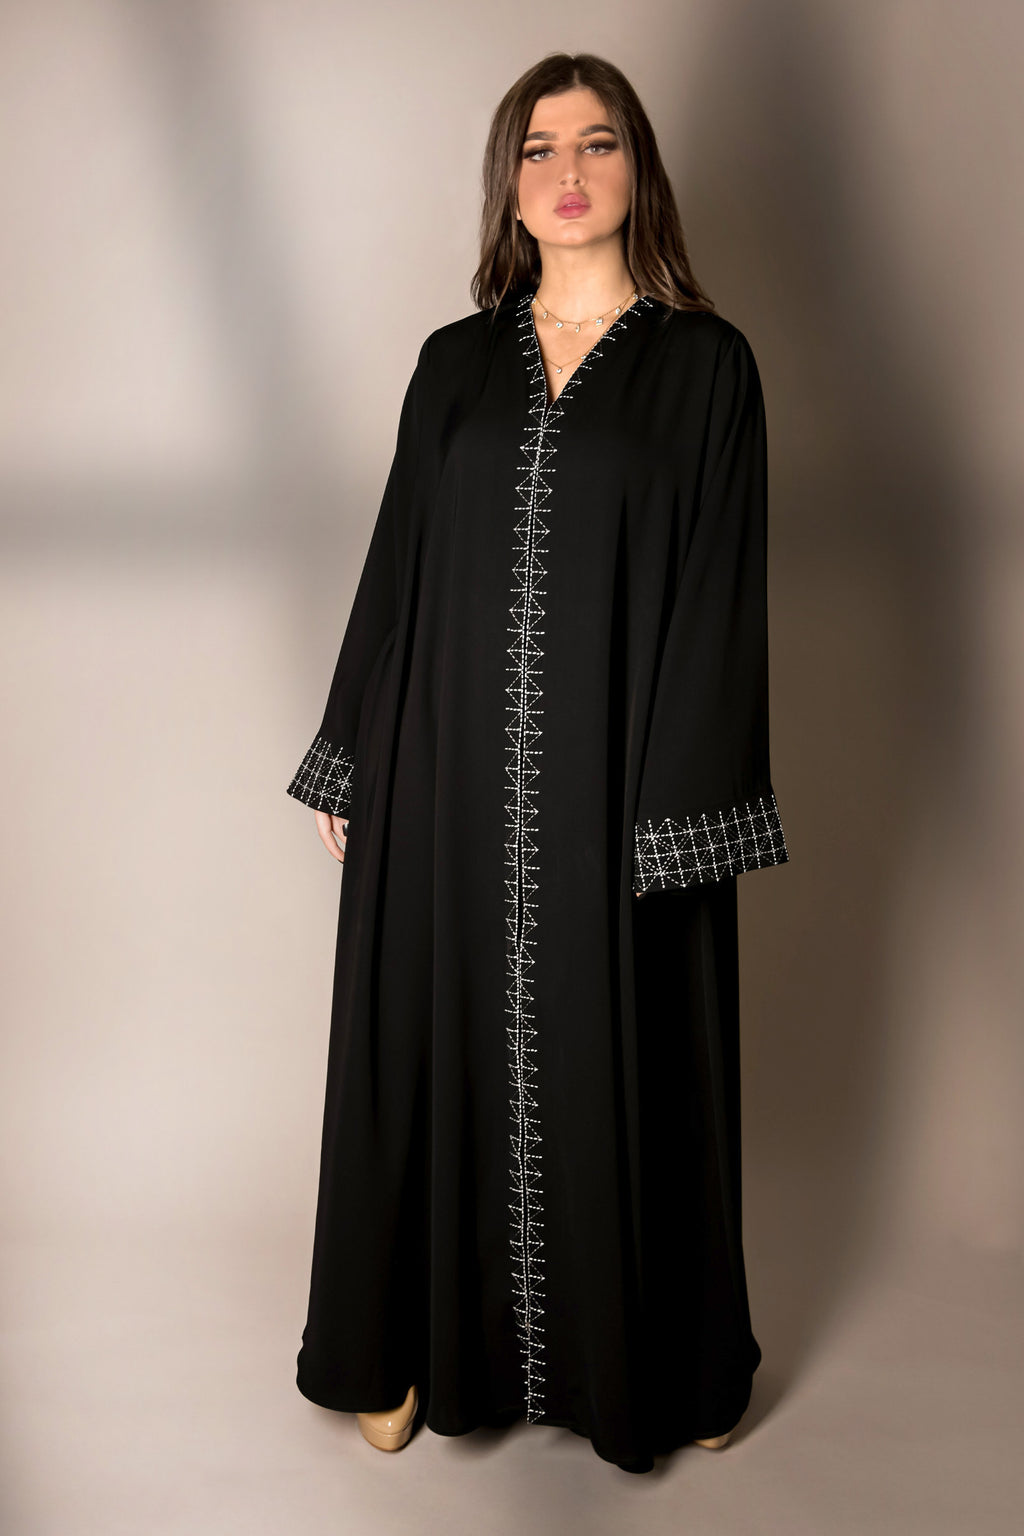 BLACK GEOMETRIC EMBROIDERED ABAYA.